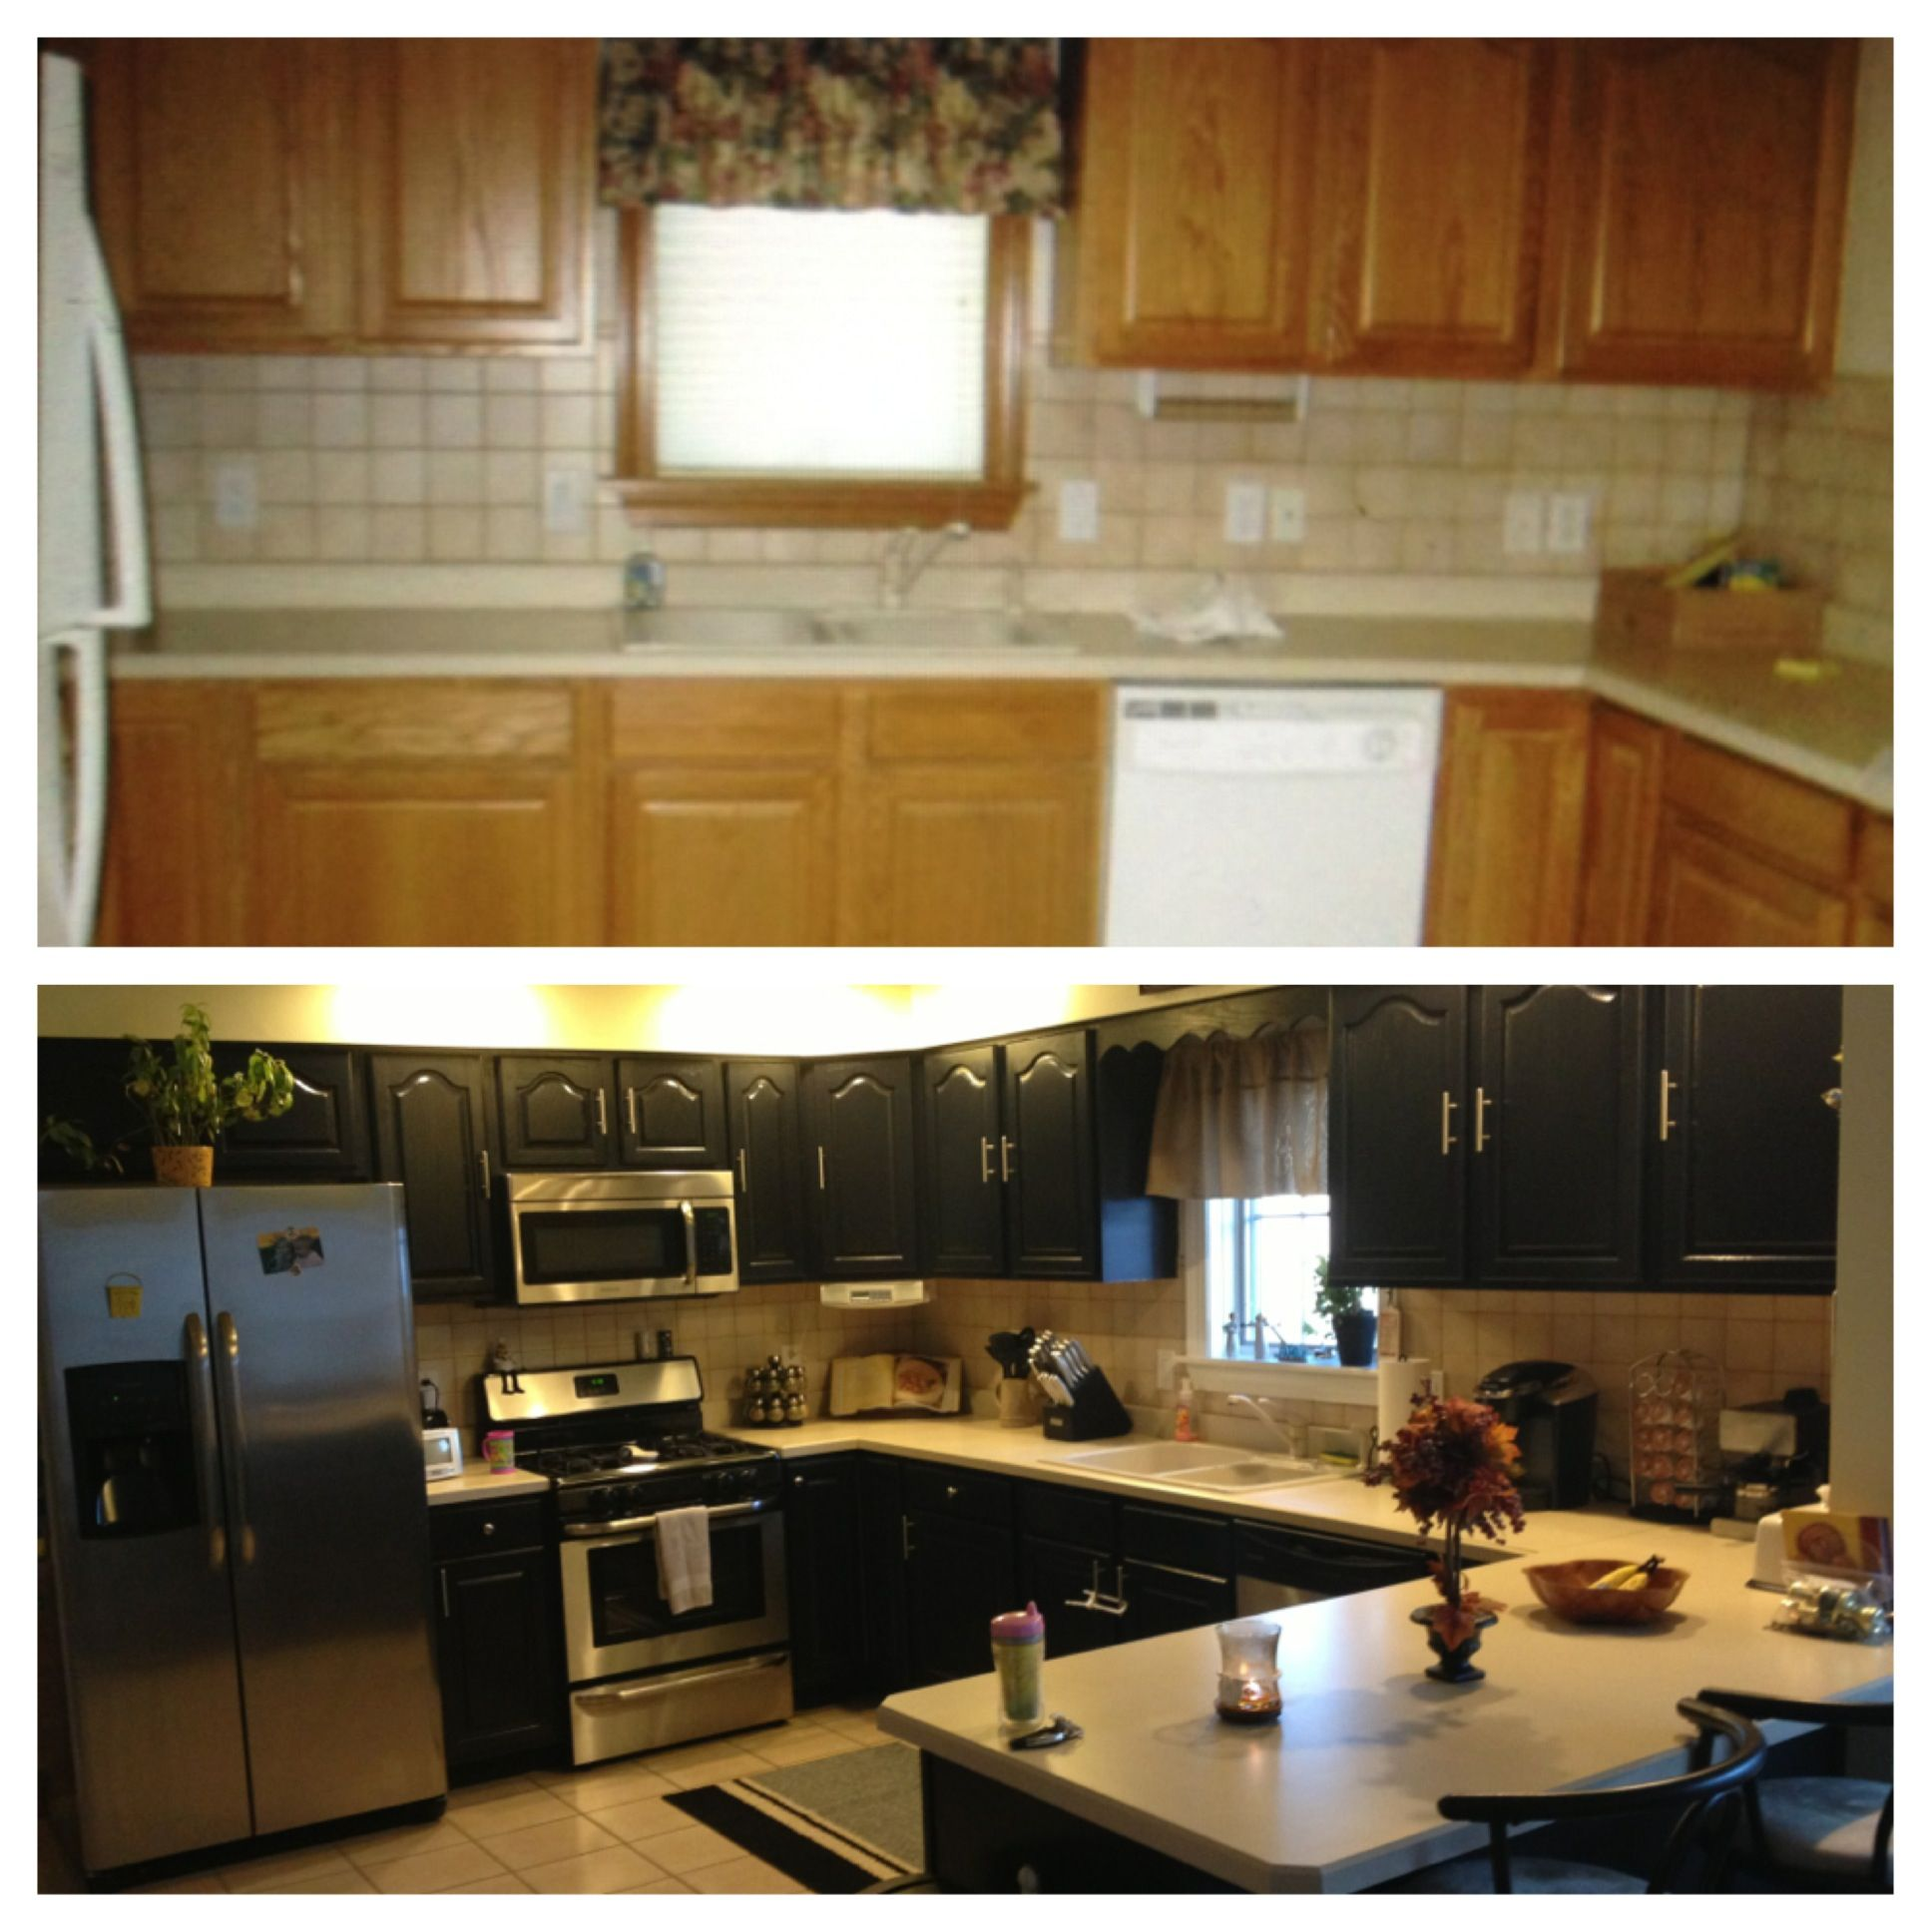 Is Semi Gloss Paint Best For Kitchen Cabinets: Painted Oak Cabinets To New Black By Valspar In Semi Gloss